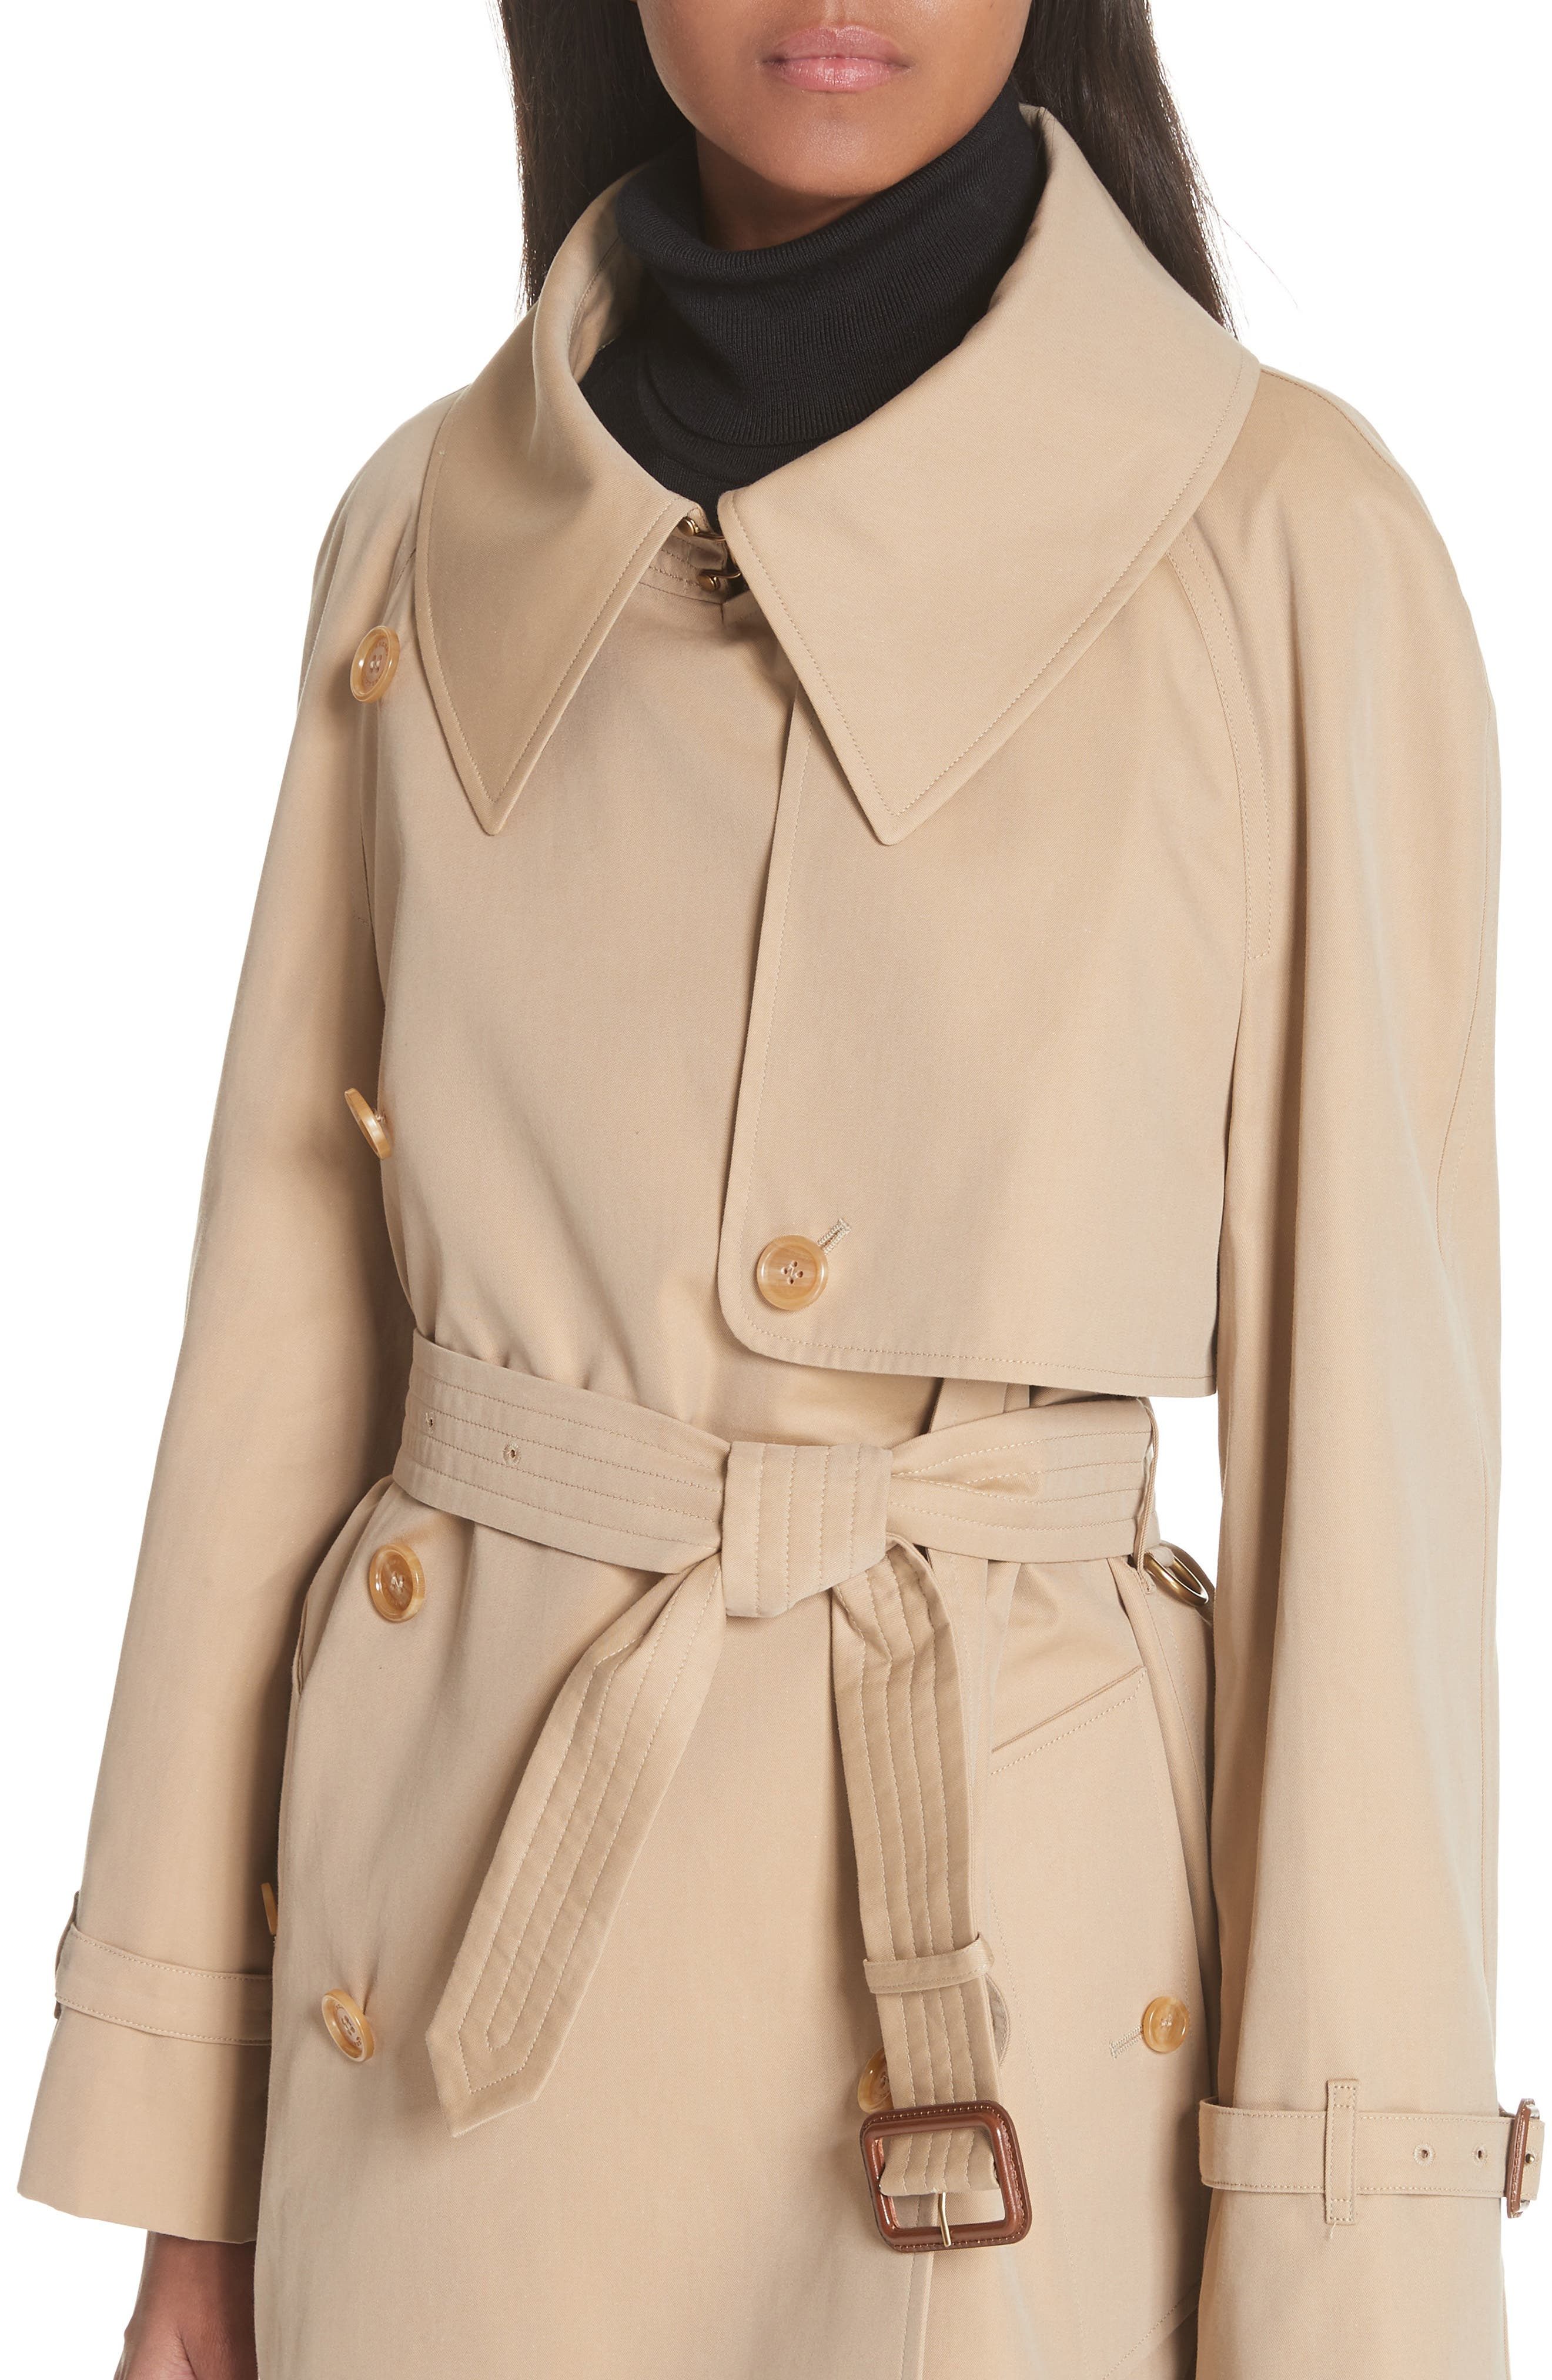 Fortingall Cotton Gabardine Trench Coat,                             Alternate thumbnail 4, color,                             255